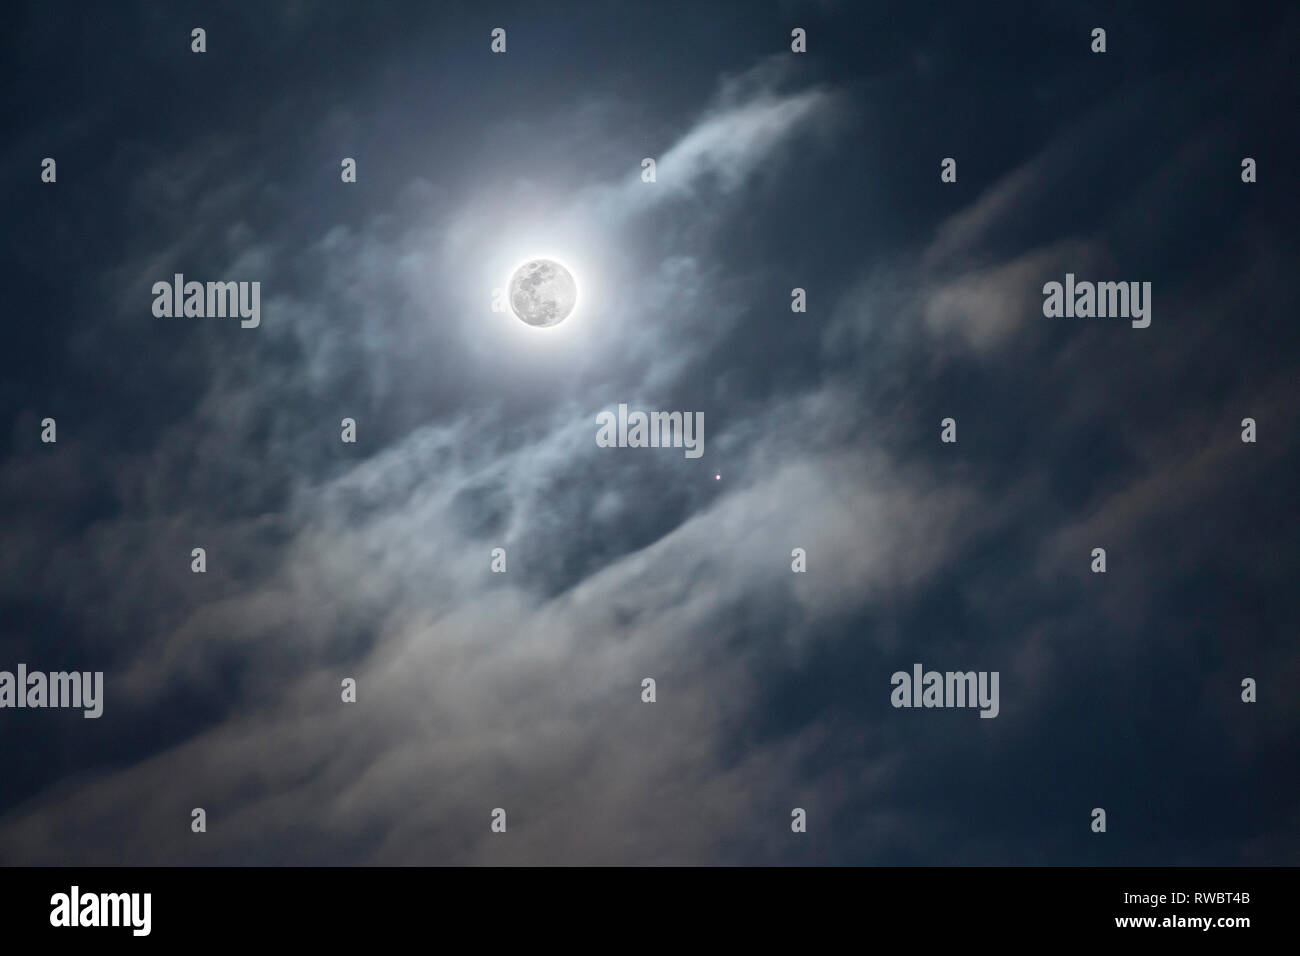 A full Moon on cloudy sky background. Jupiter planet with moons. Telescopic astrophotography. Astronimical event - Stock Image